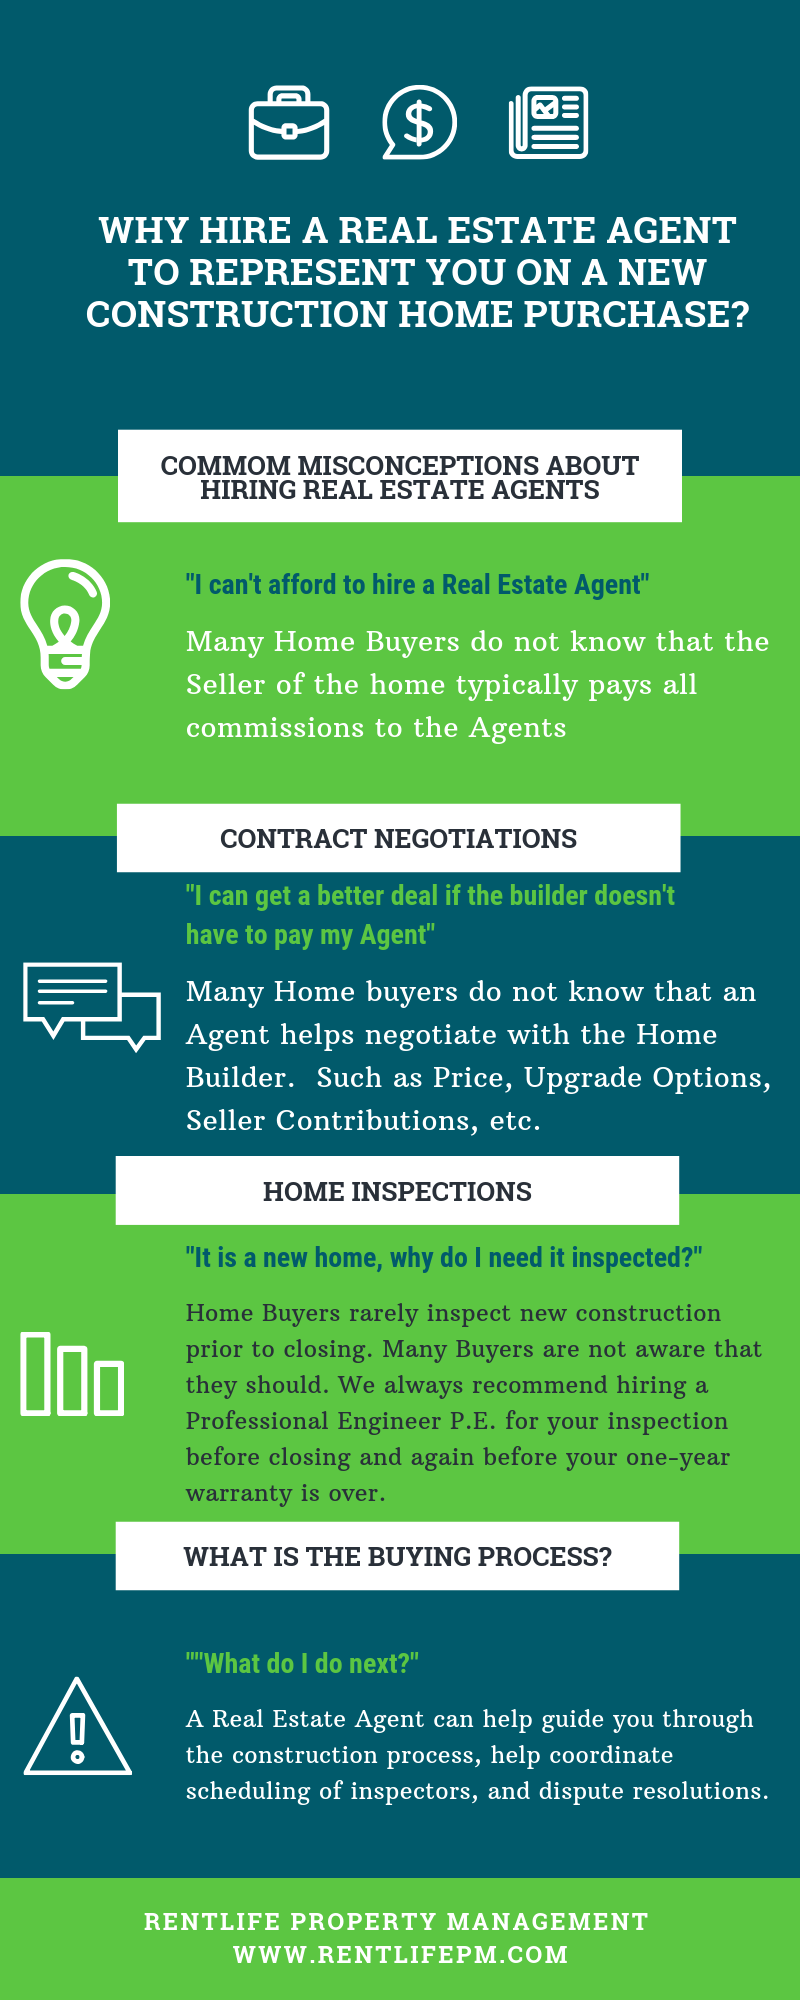 Why hire a real estate agent professional to represent you on your new home purchase